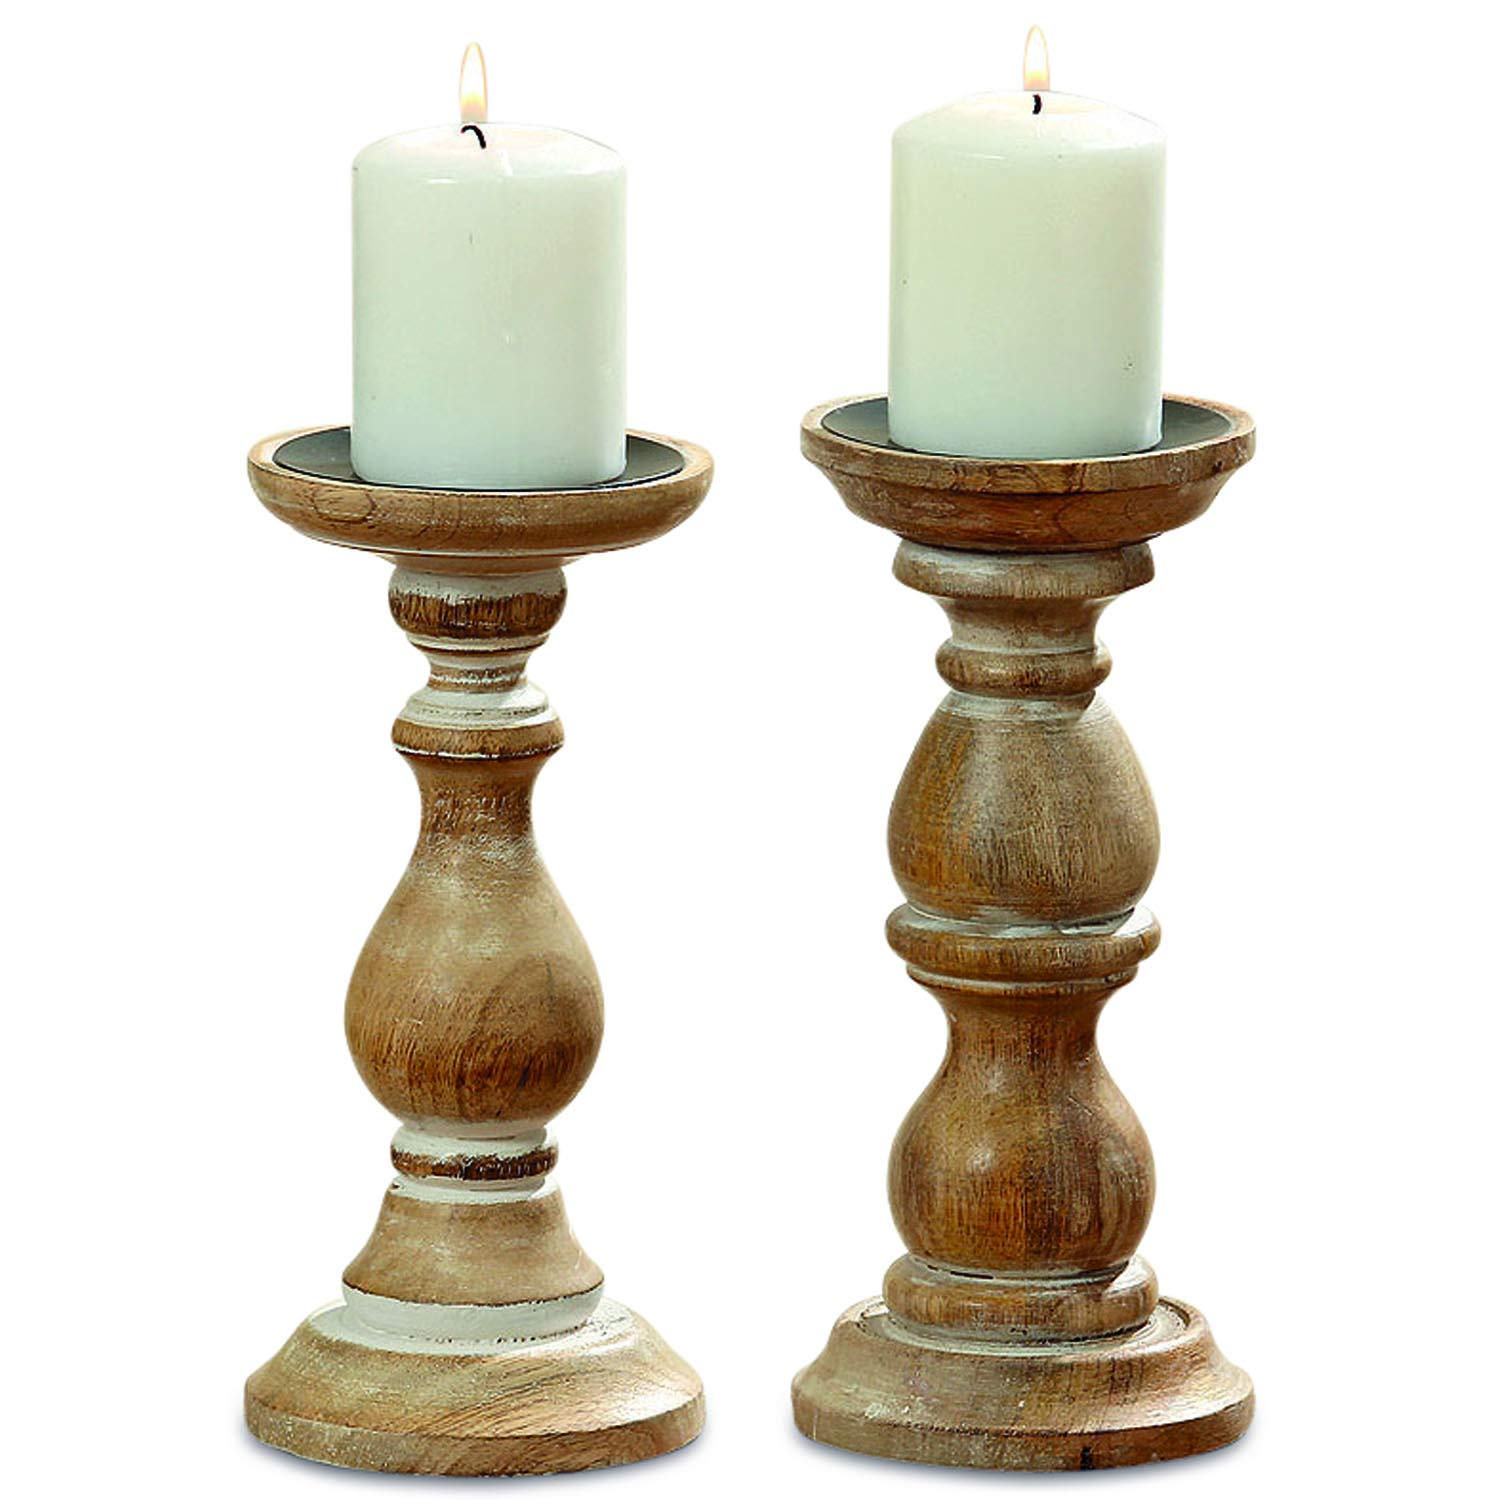 The Rustic Stockbridge Candle Holder Set of 2, Rounded Turned Columns, Sustainable Wood, Distressed with Vintage Style White Wash, 9 H x 4 D Inches, By Whole House Worlds